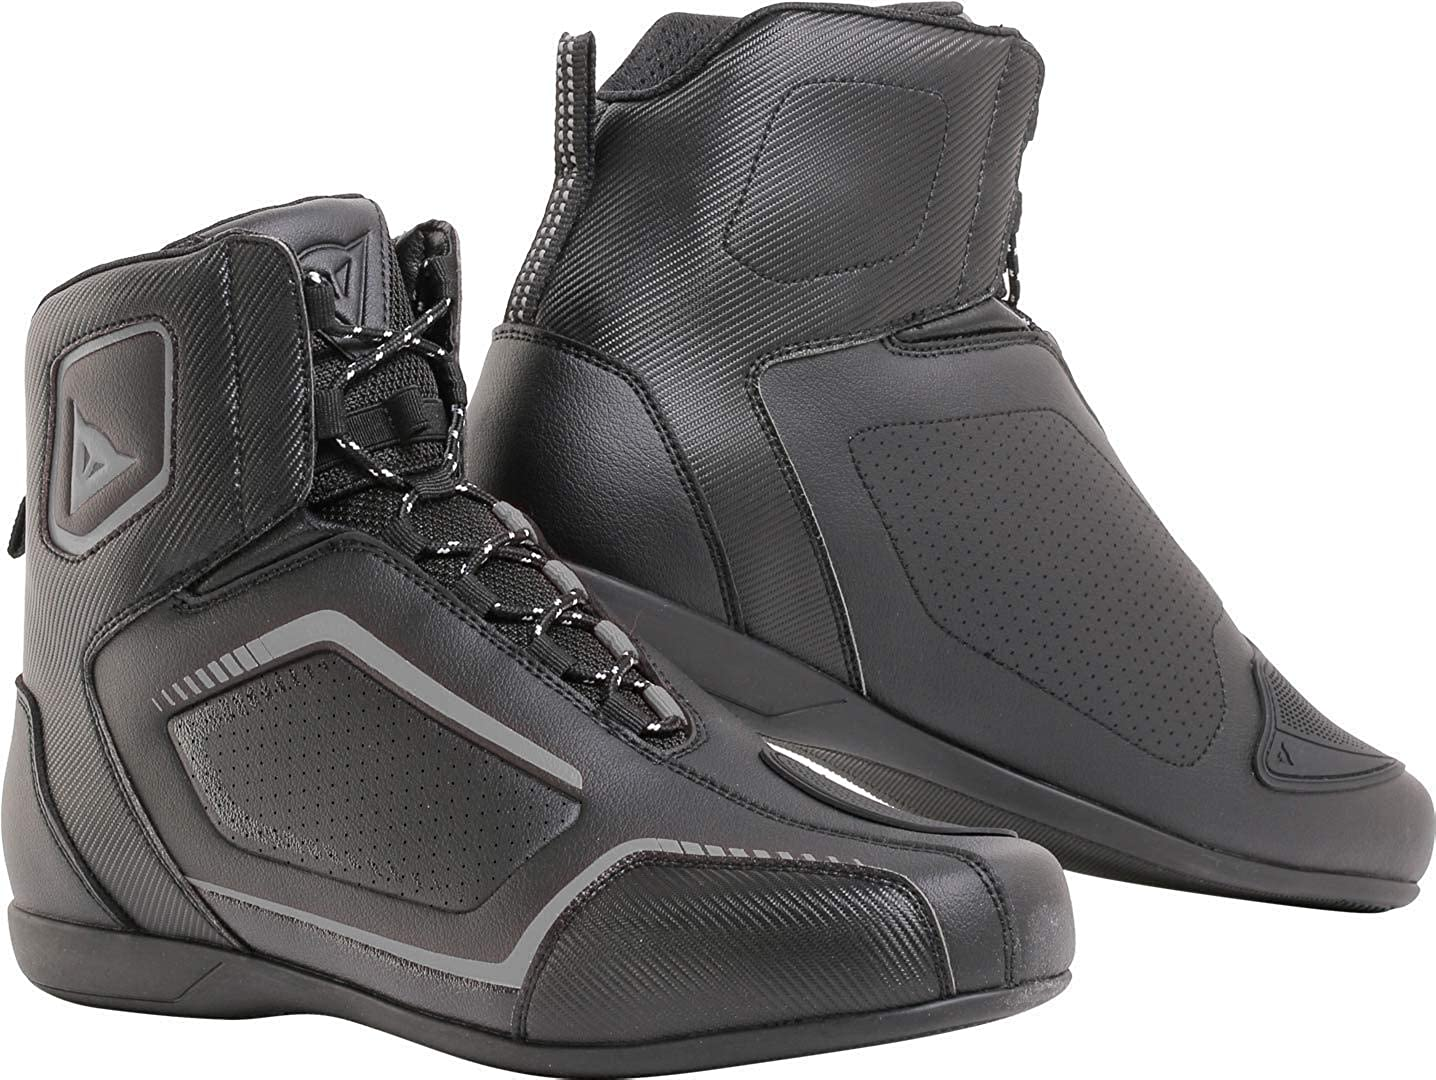 Today's only Dainese Recommendation Men's Racing Shoes